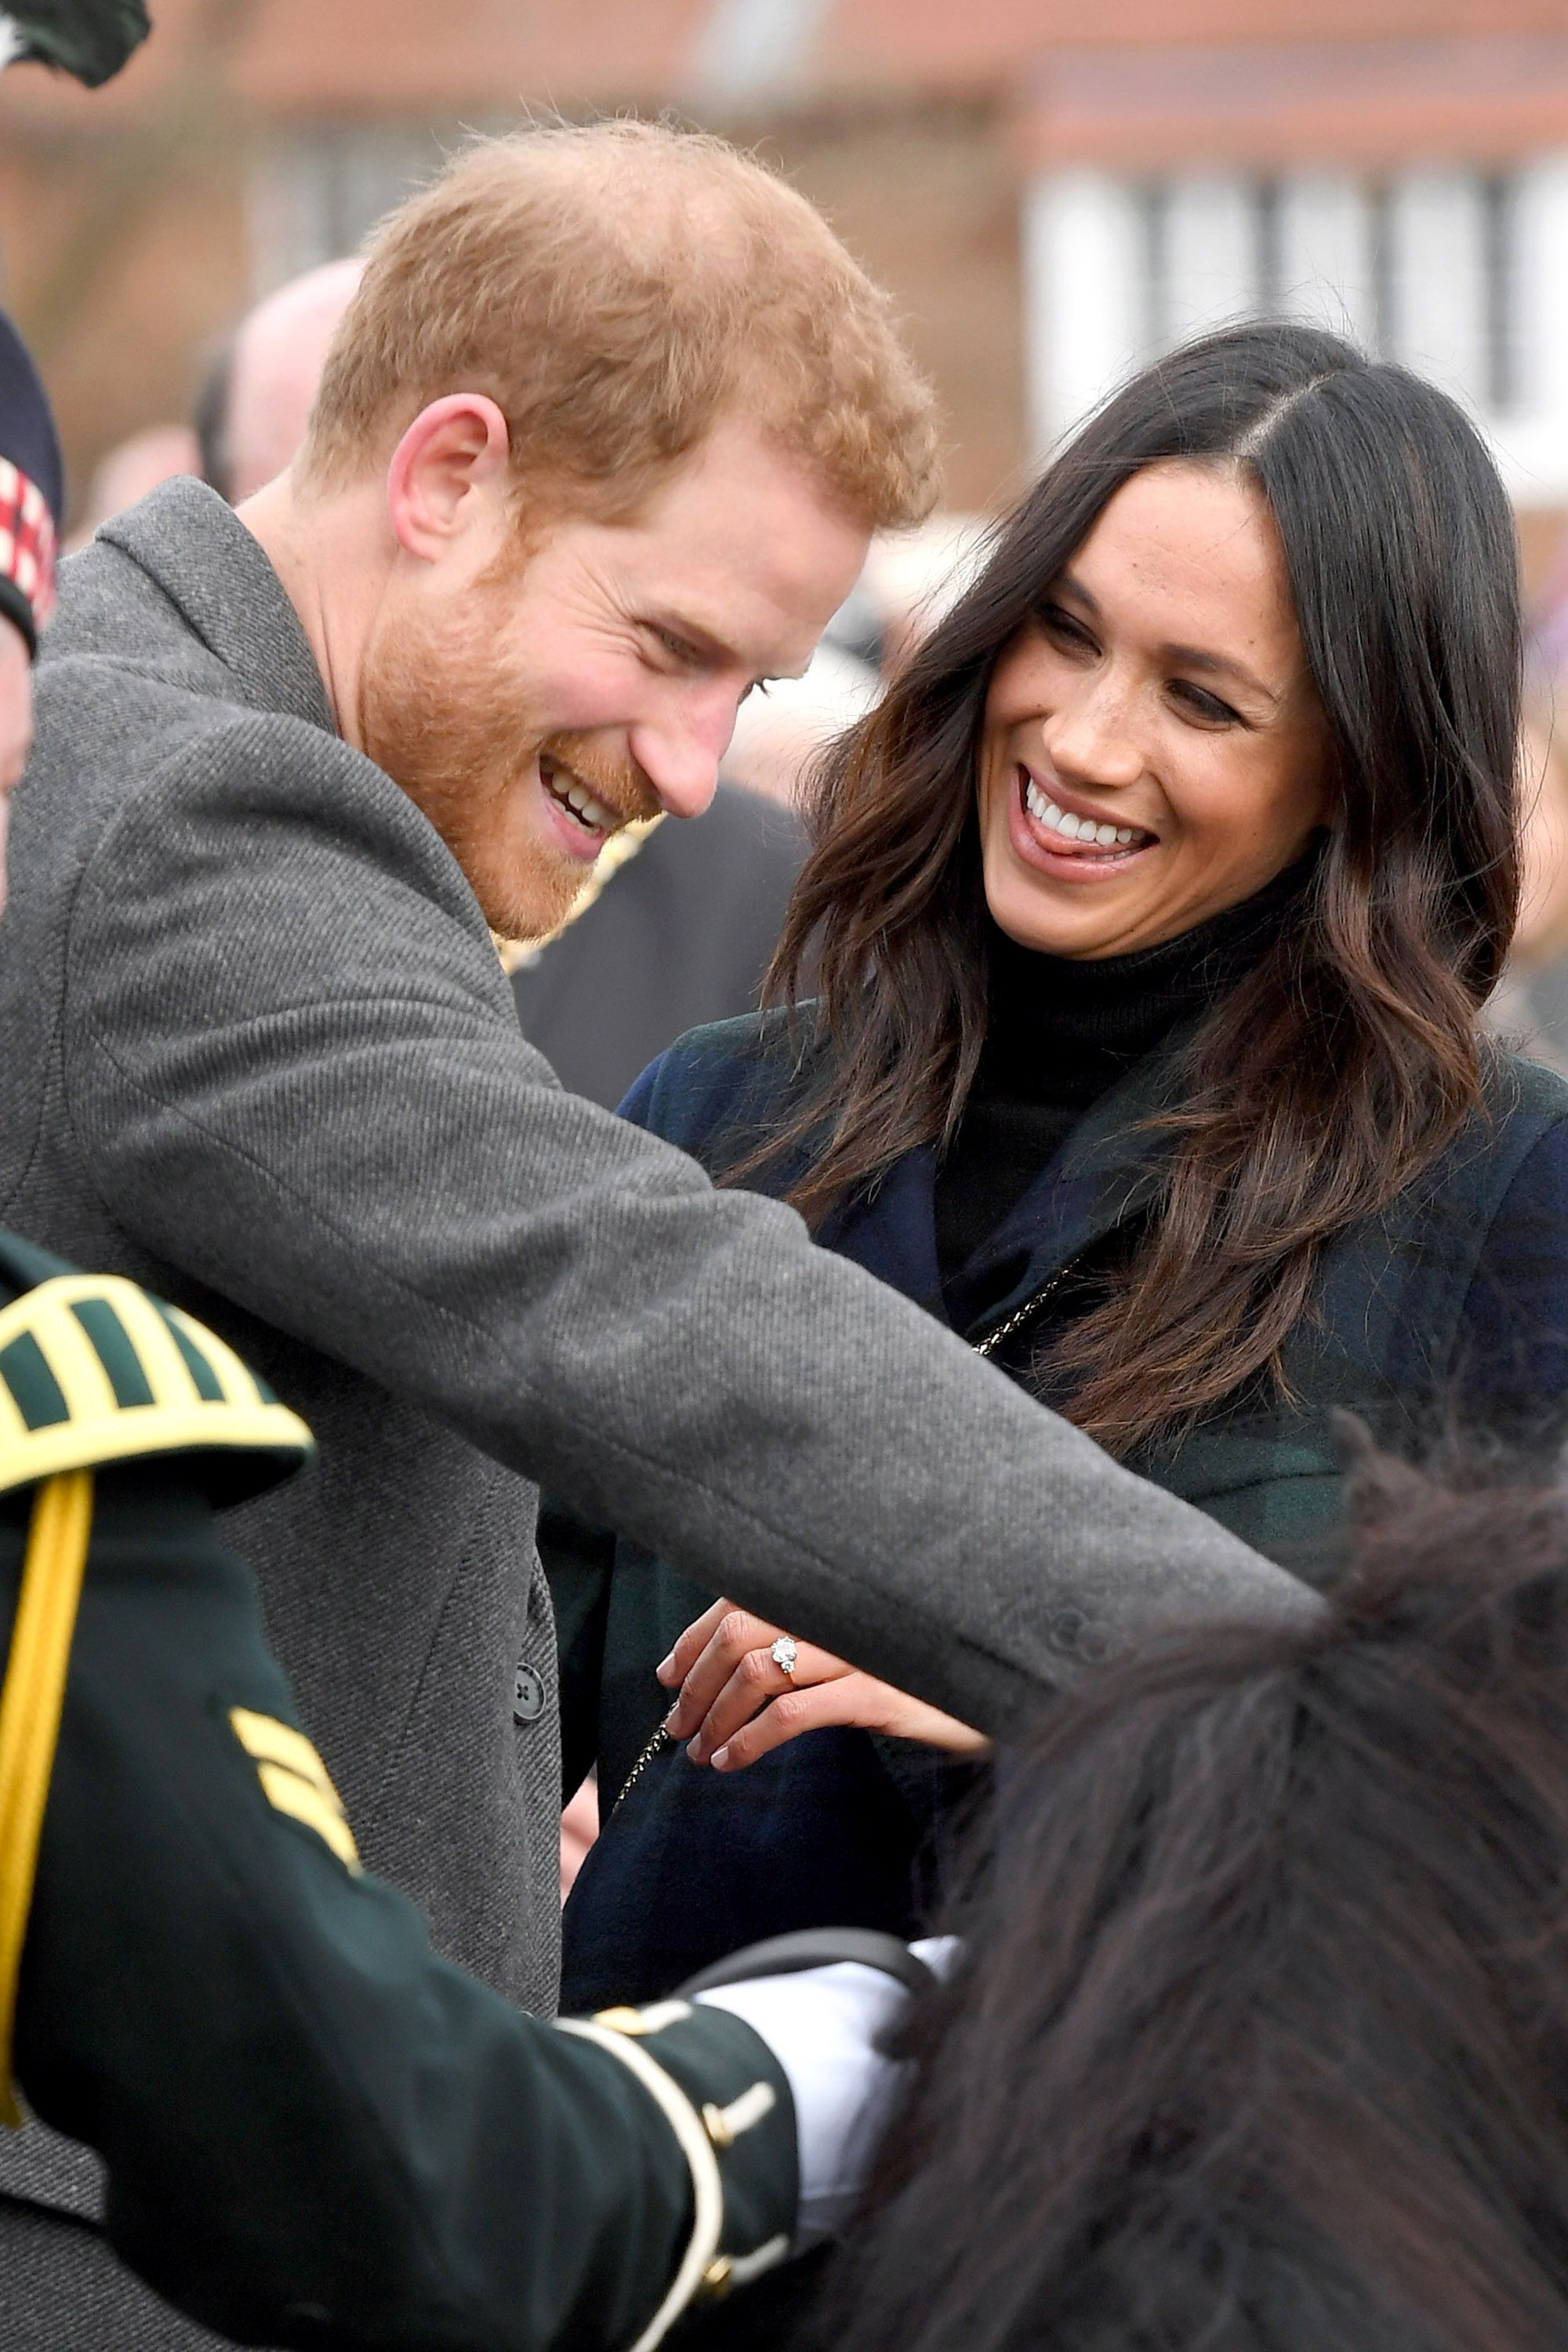 The adorable Harry and Meghan moment you may have missed at the polo recommend